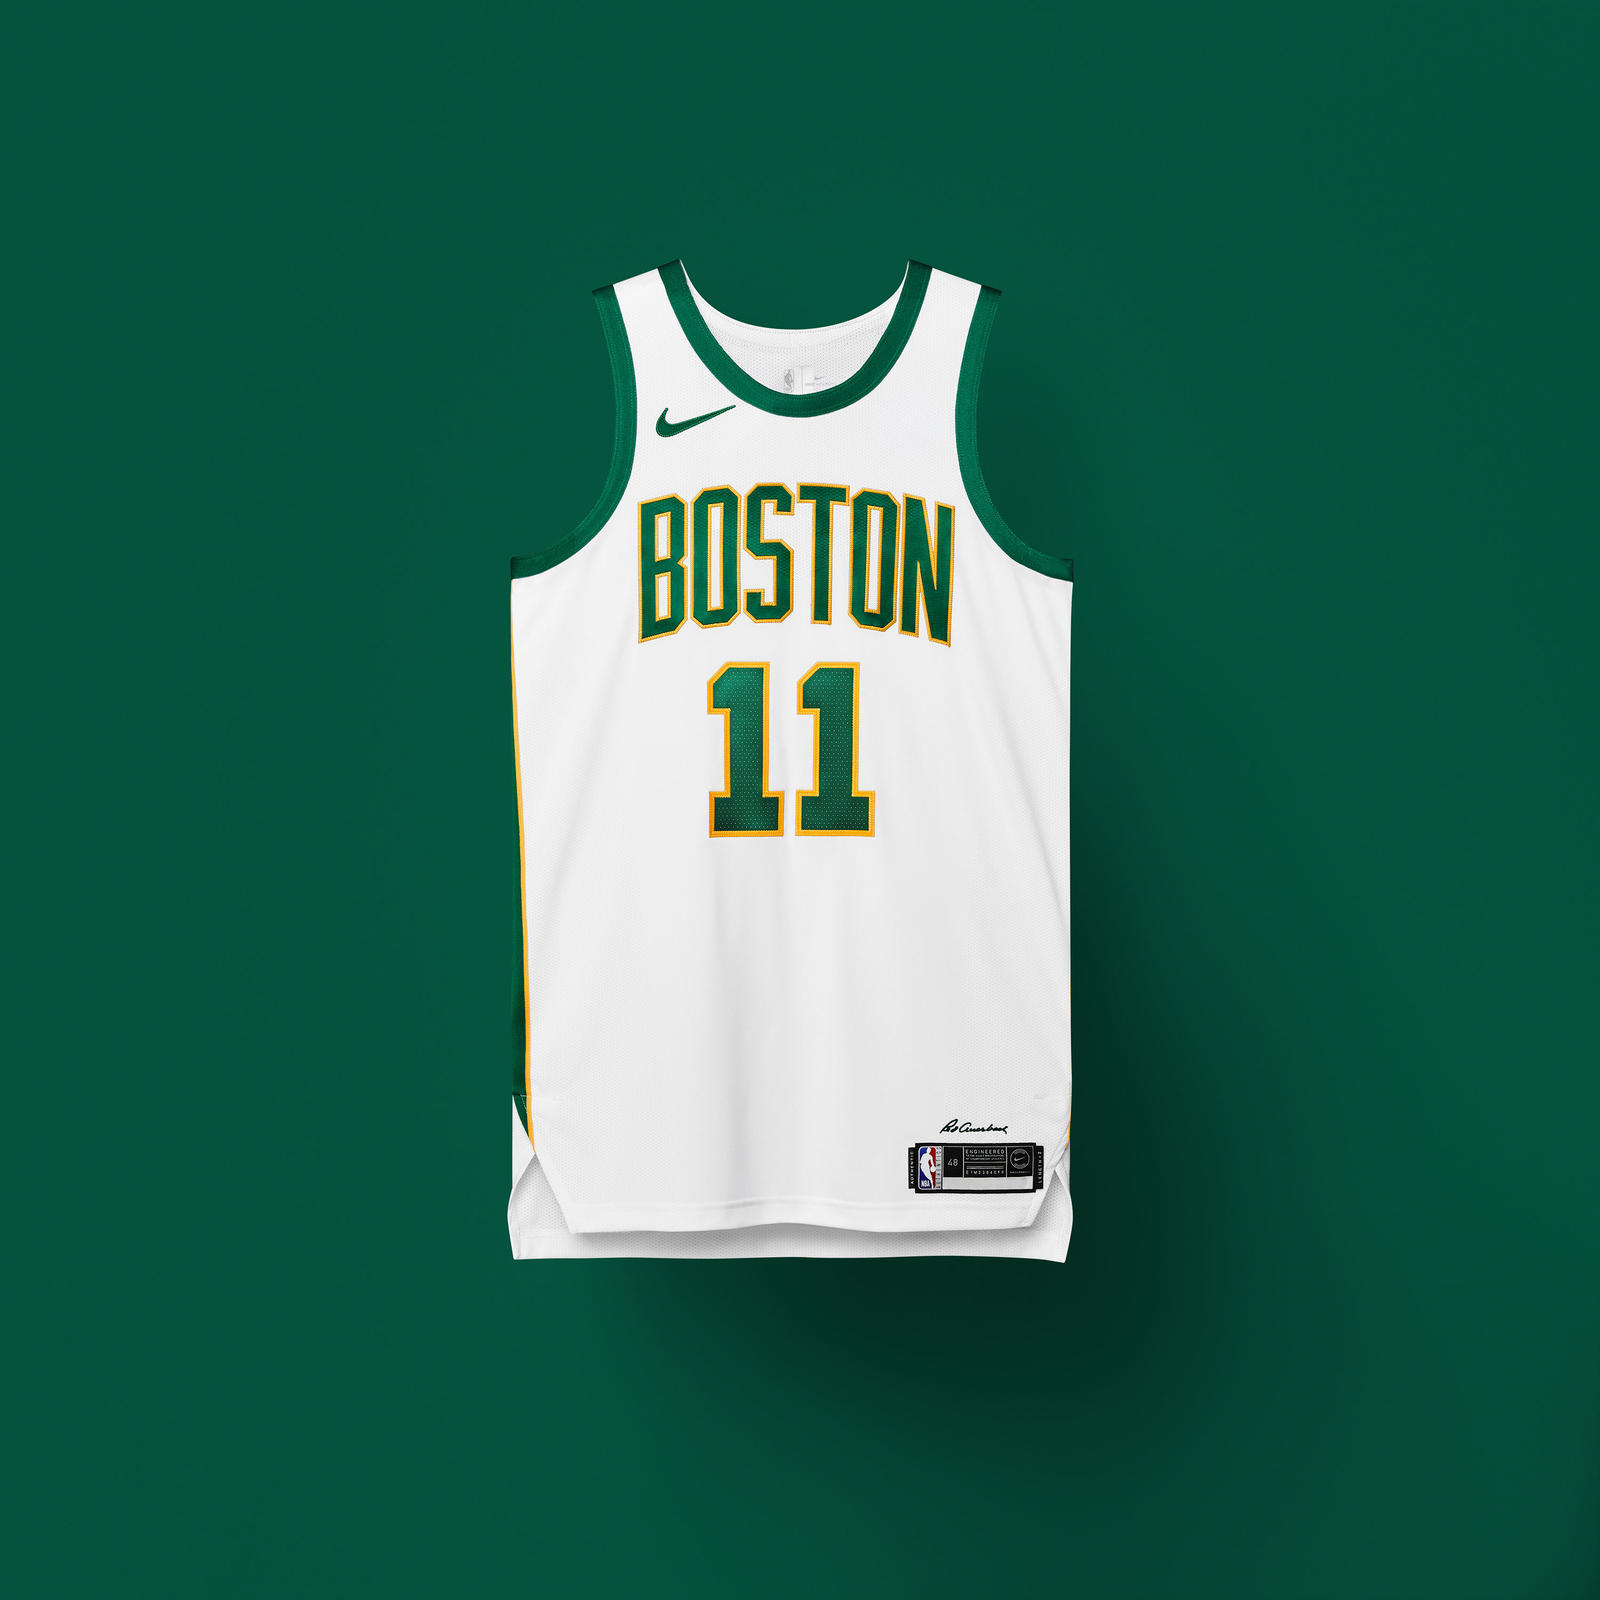 34946c86758 NBA City Edition Uniforms 2018-19 - Nike News